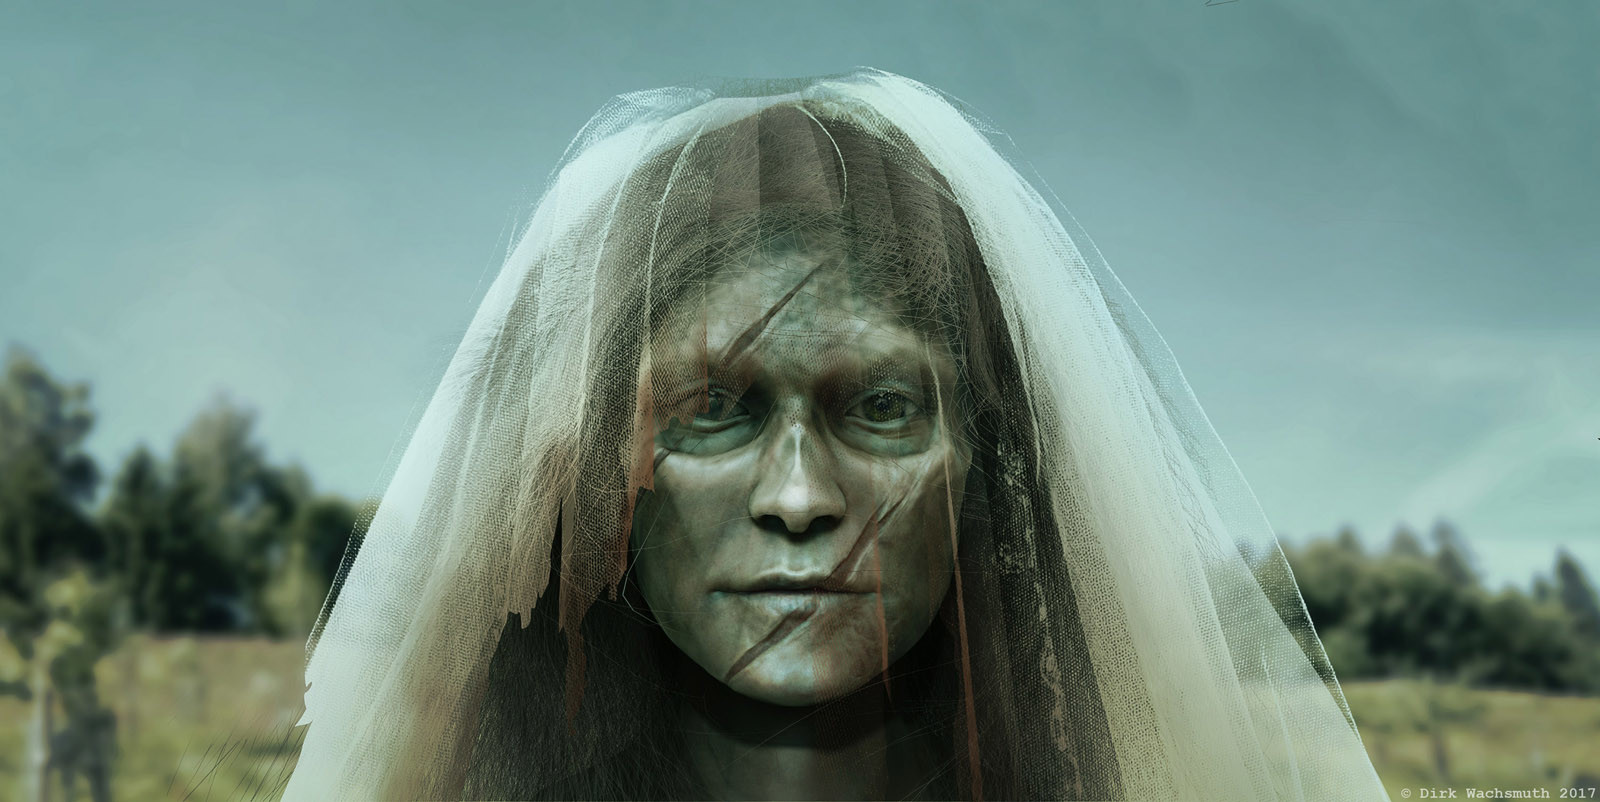 Concept for 'The Bride'